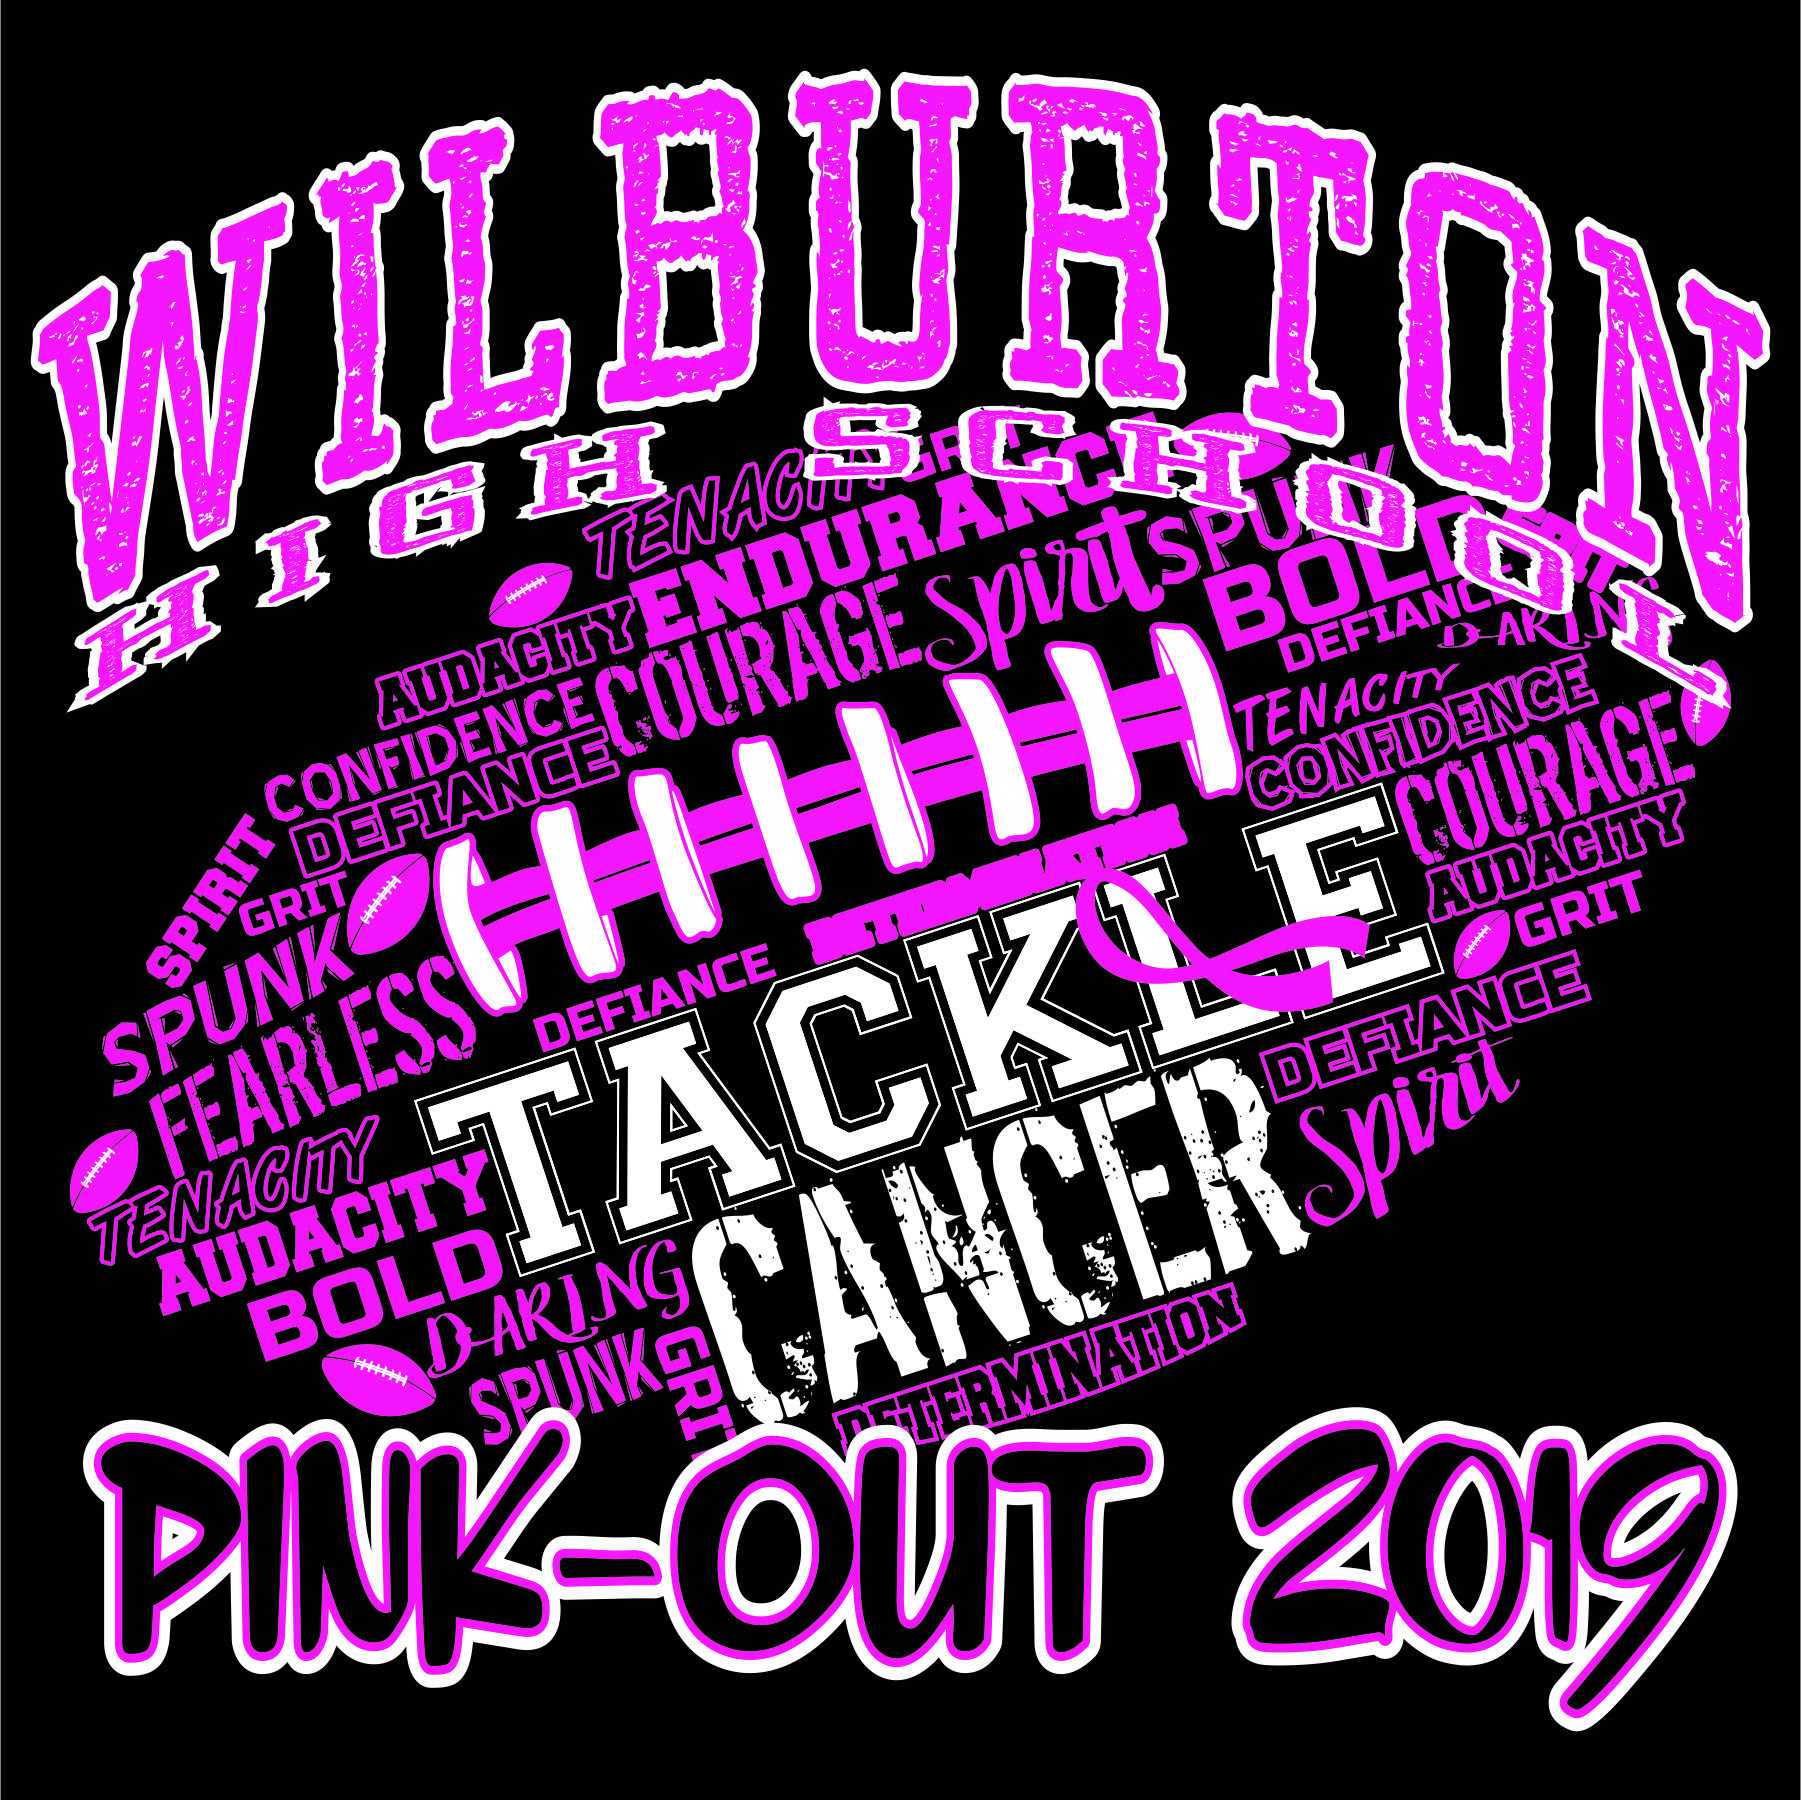 Pink Out 2019 hot pink.jpg